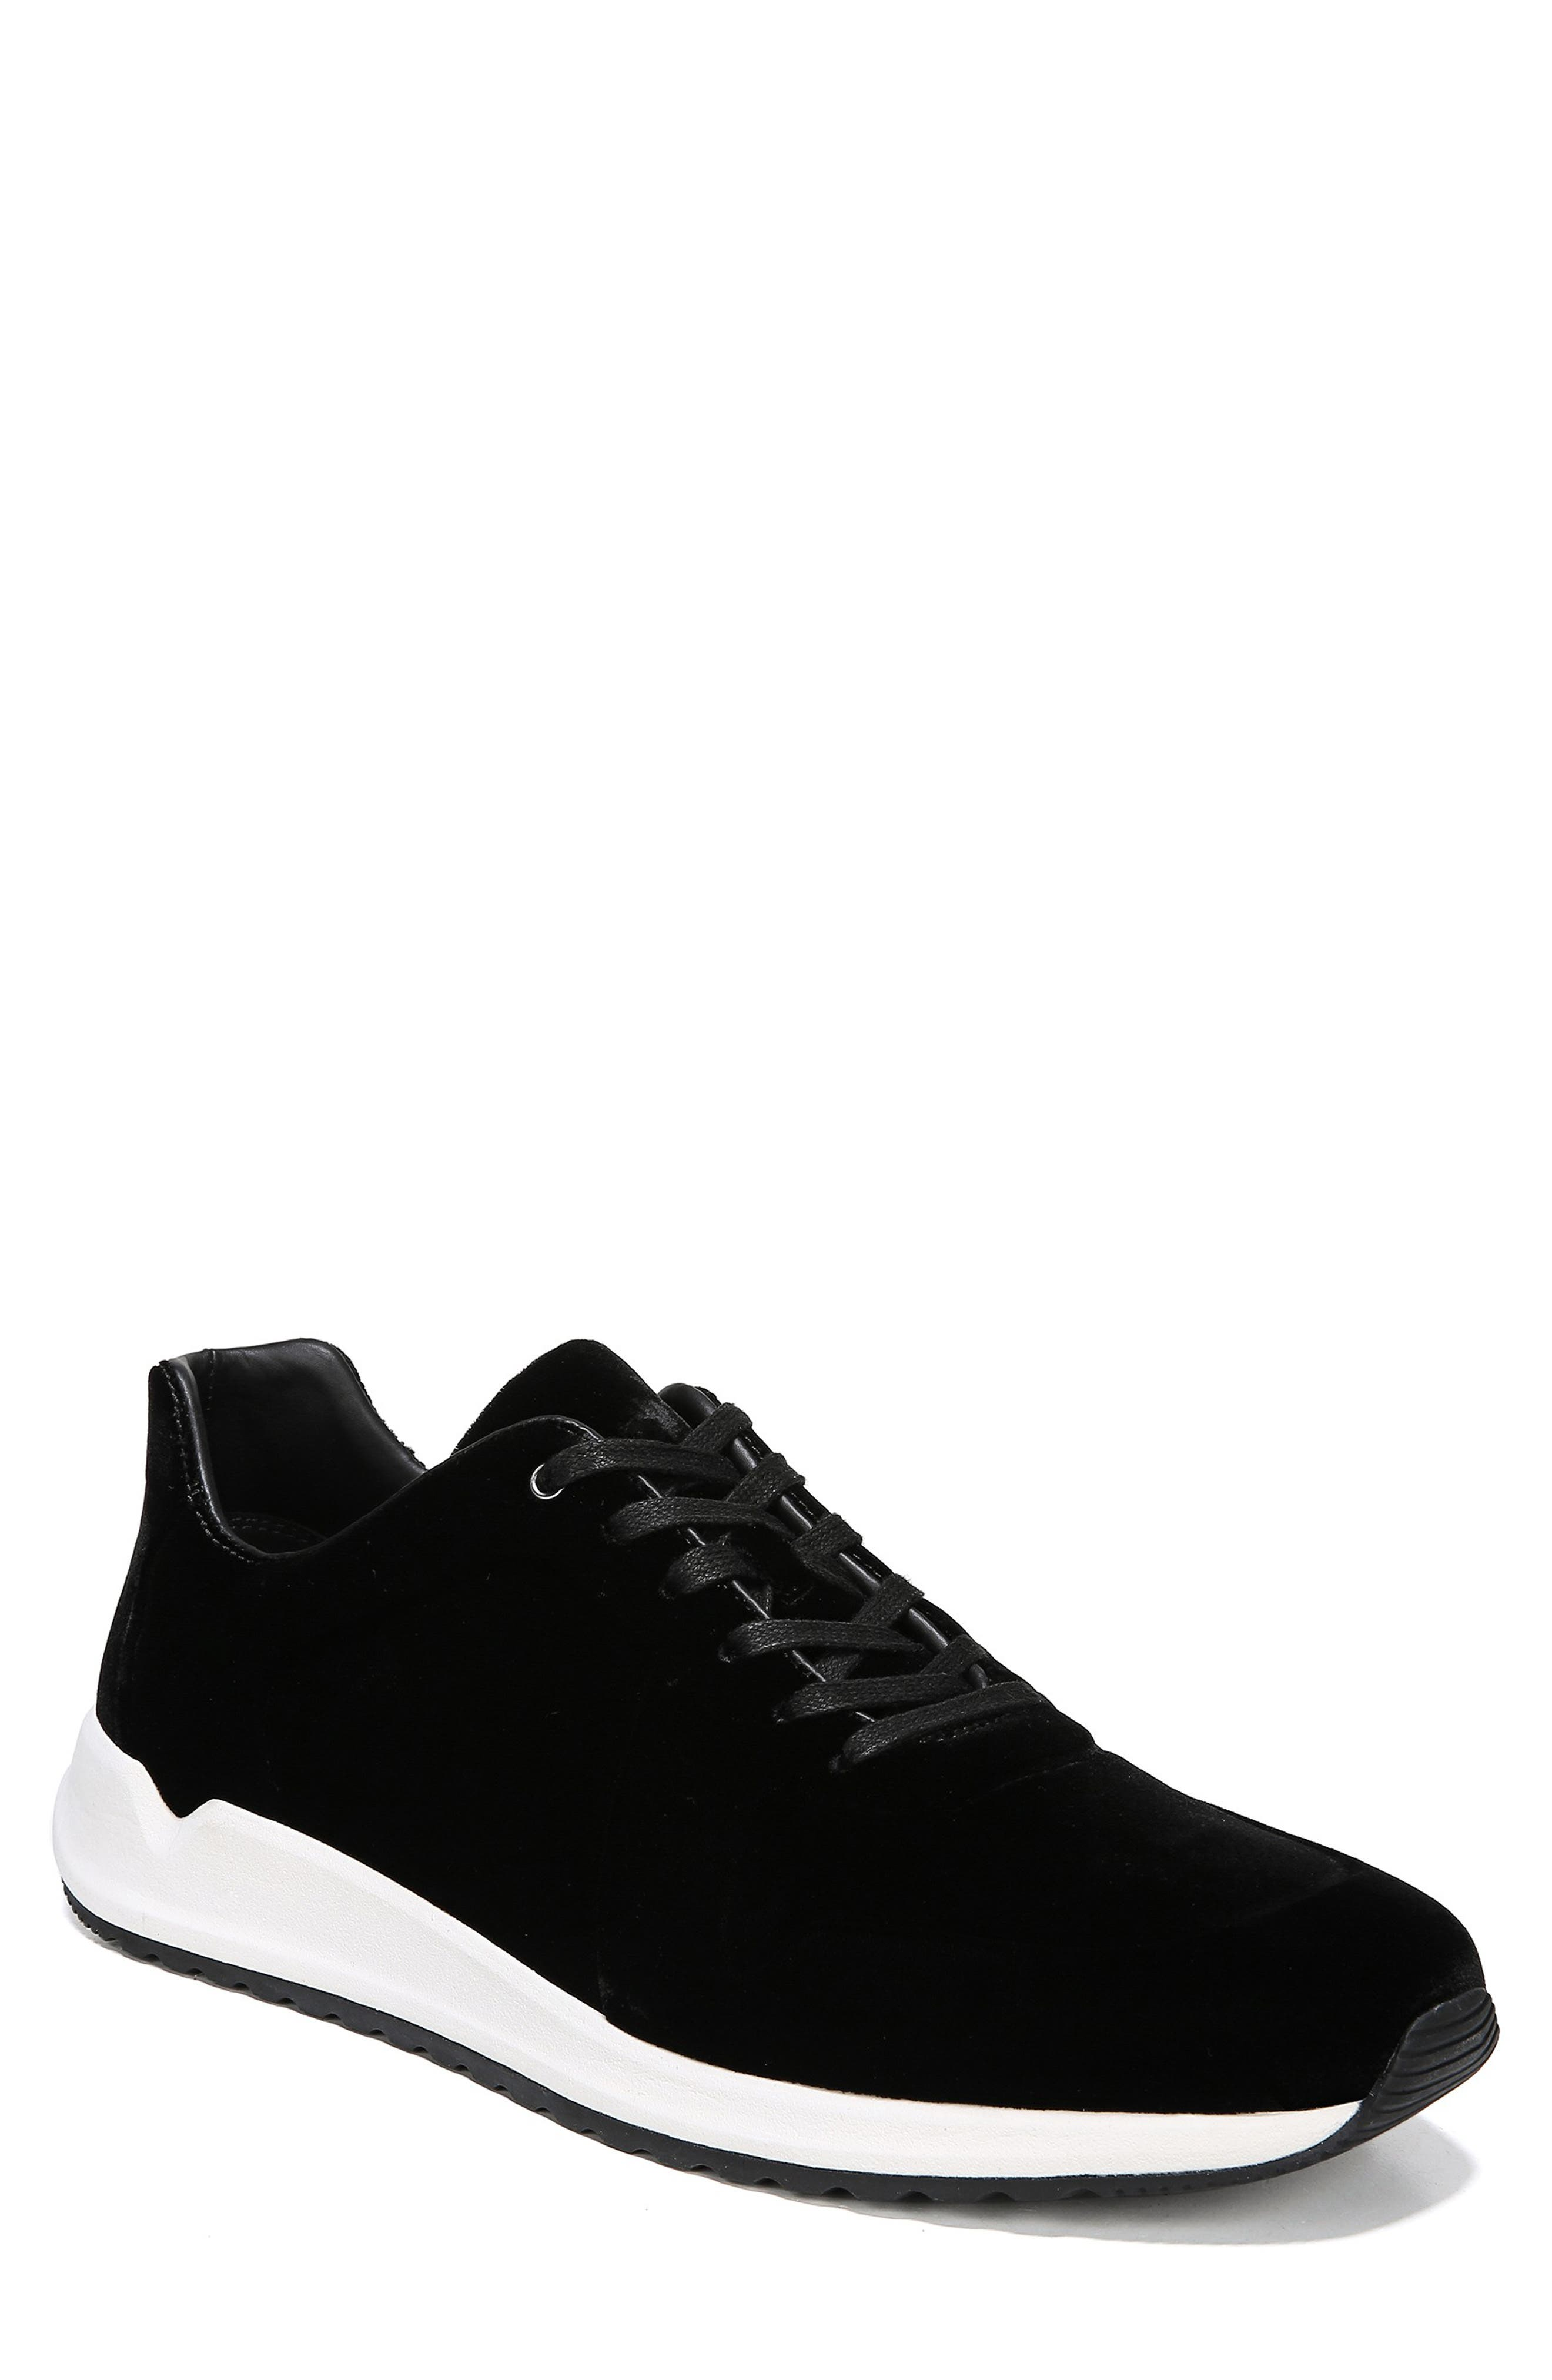 Garret Sneaker,                             Main thumbnail 1, color,                             BLACK